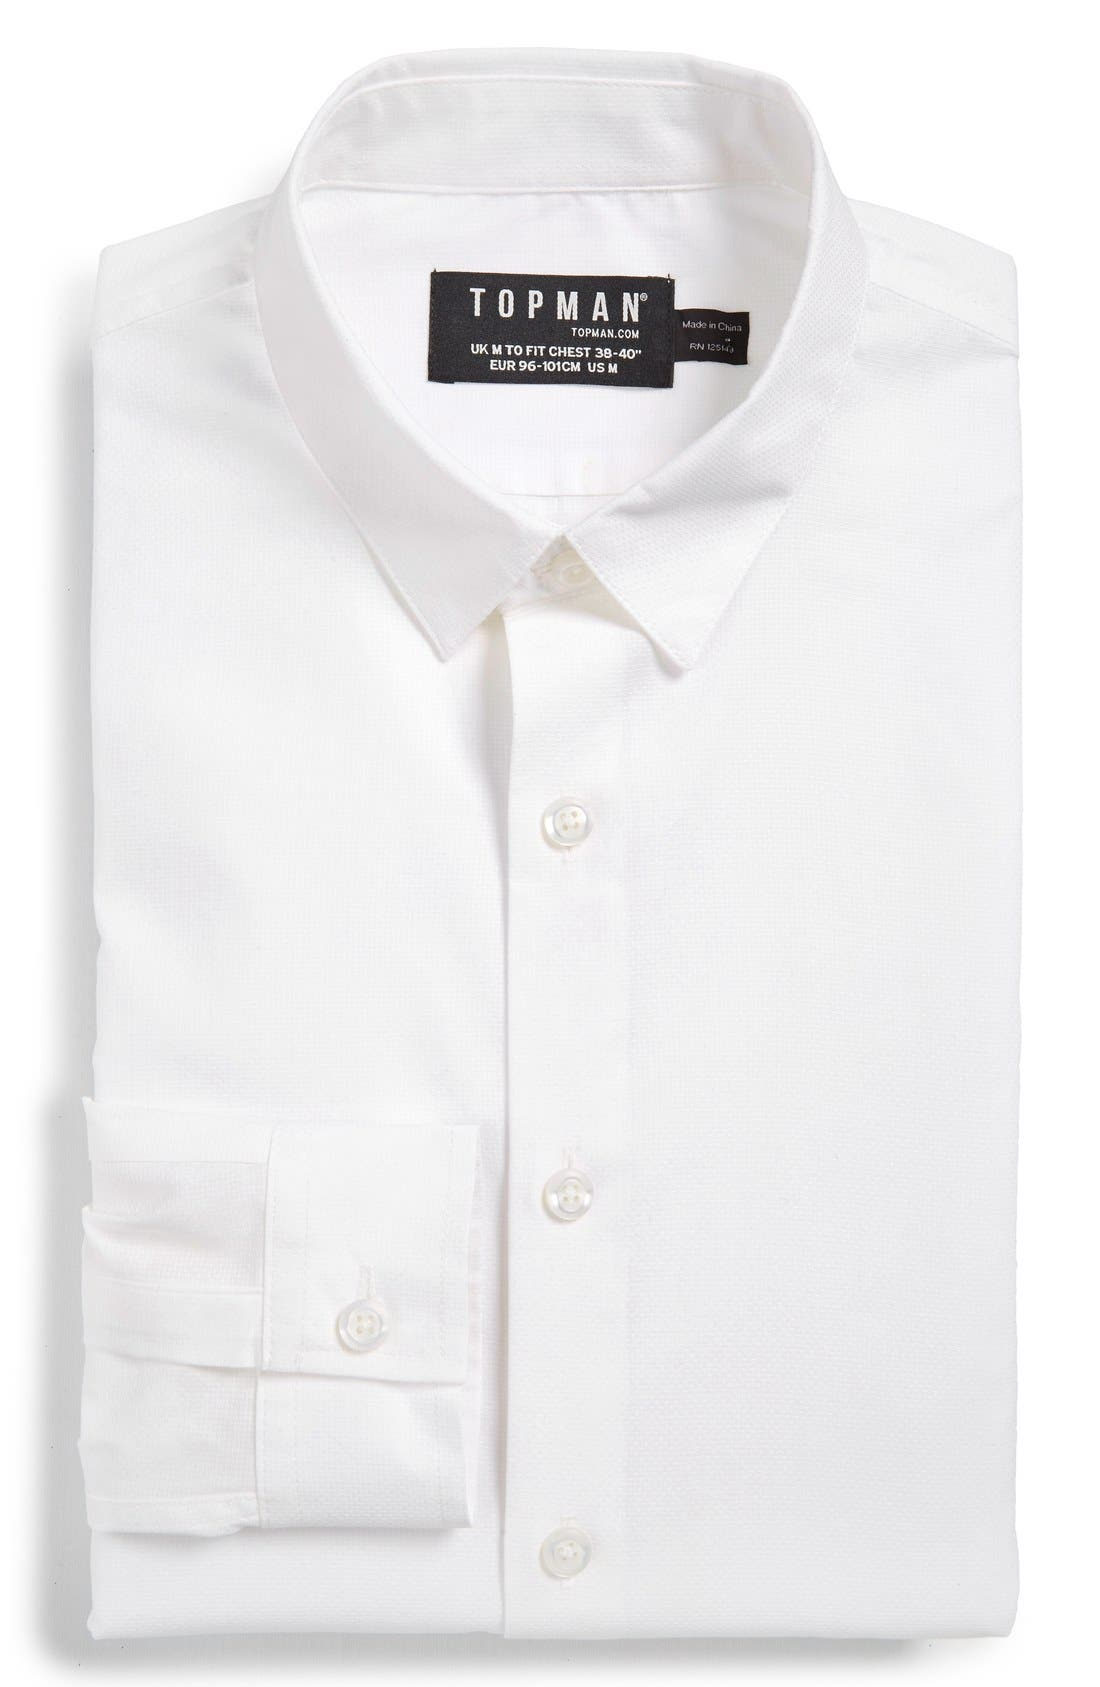 Alternate Image 1 Selected - Topman Slim Fit Textured Cotton Dress Shirt